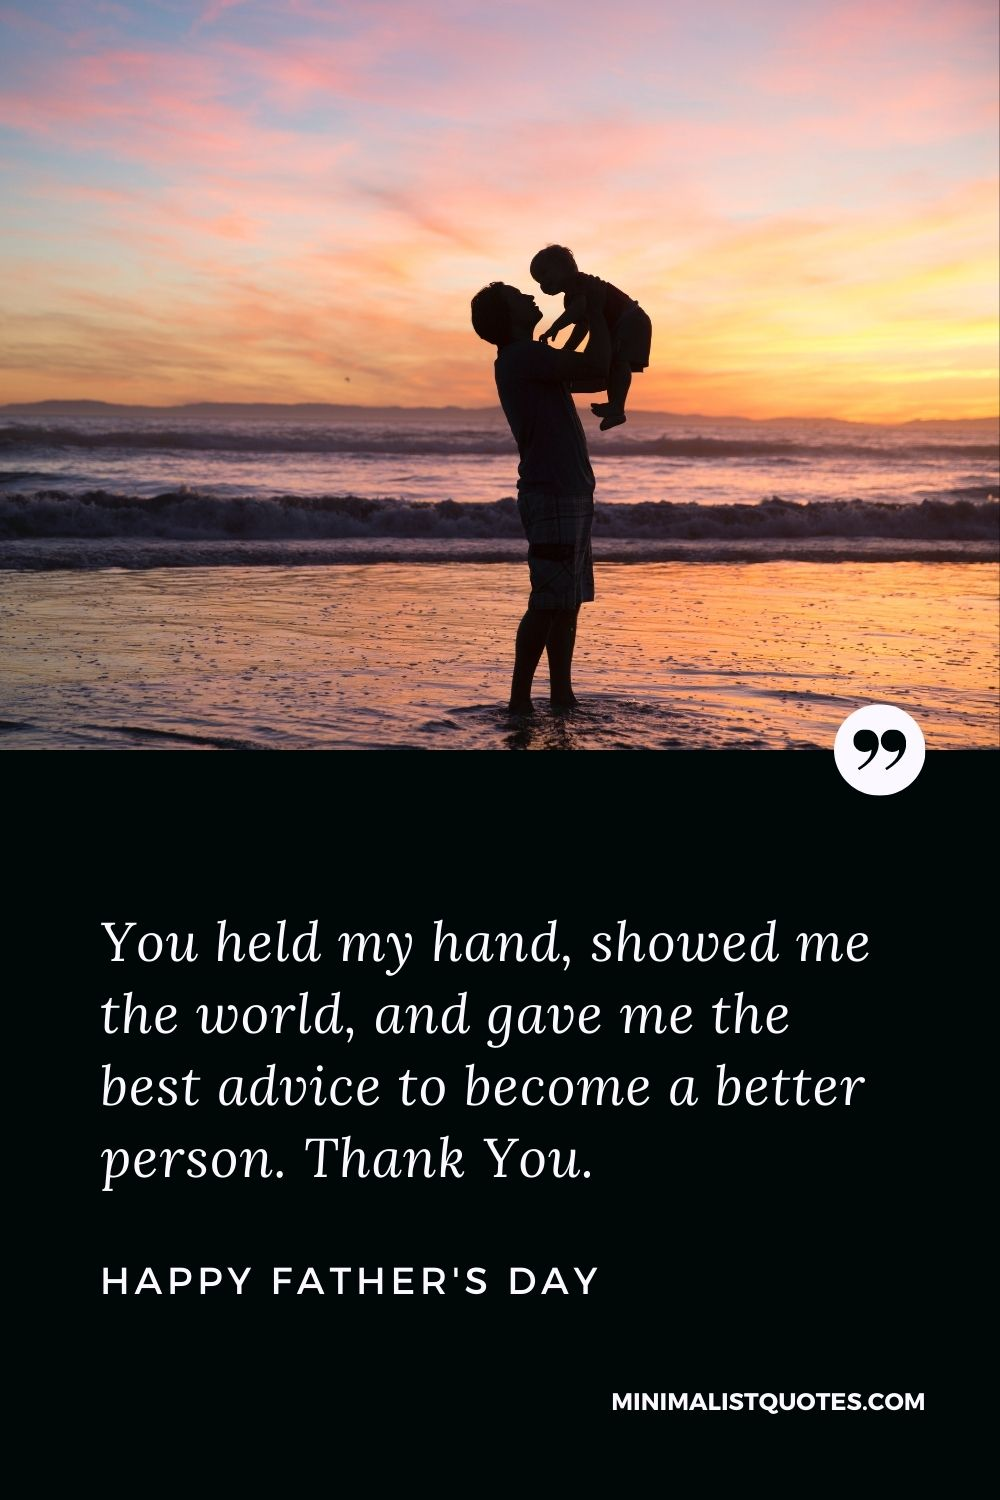 Father's Day Wish & Message With HD Image: You held my hand, showed me the world, and gave me the best advice to become a better person. Thank You. Happy Father's Day!